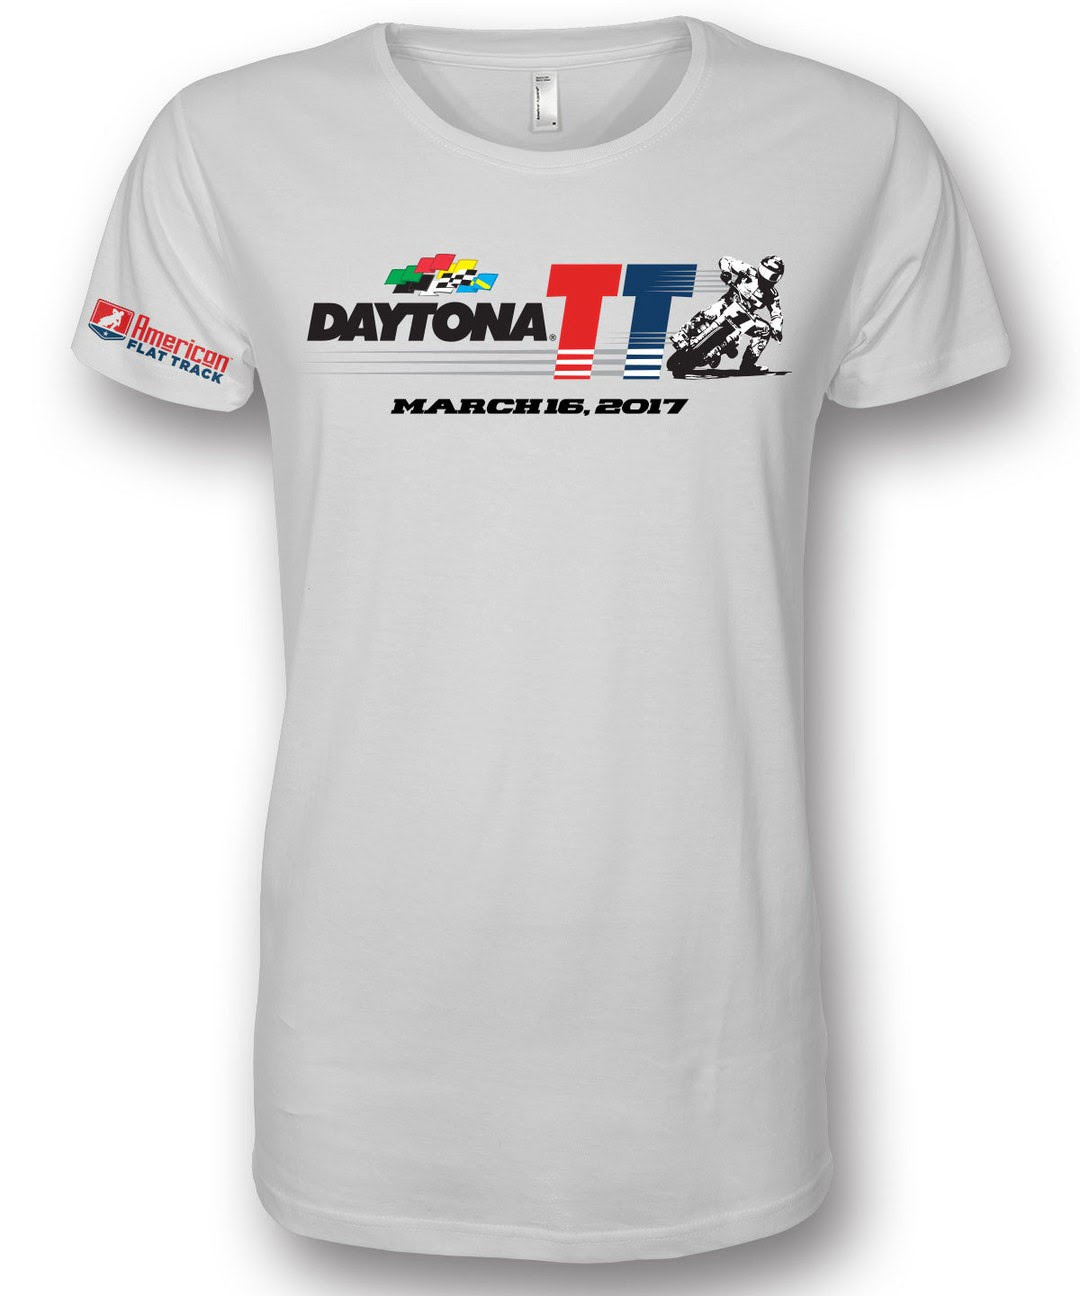 Event: 2017 Daytona - Men's S/S White